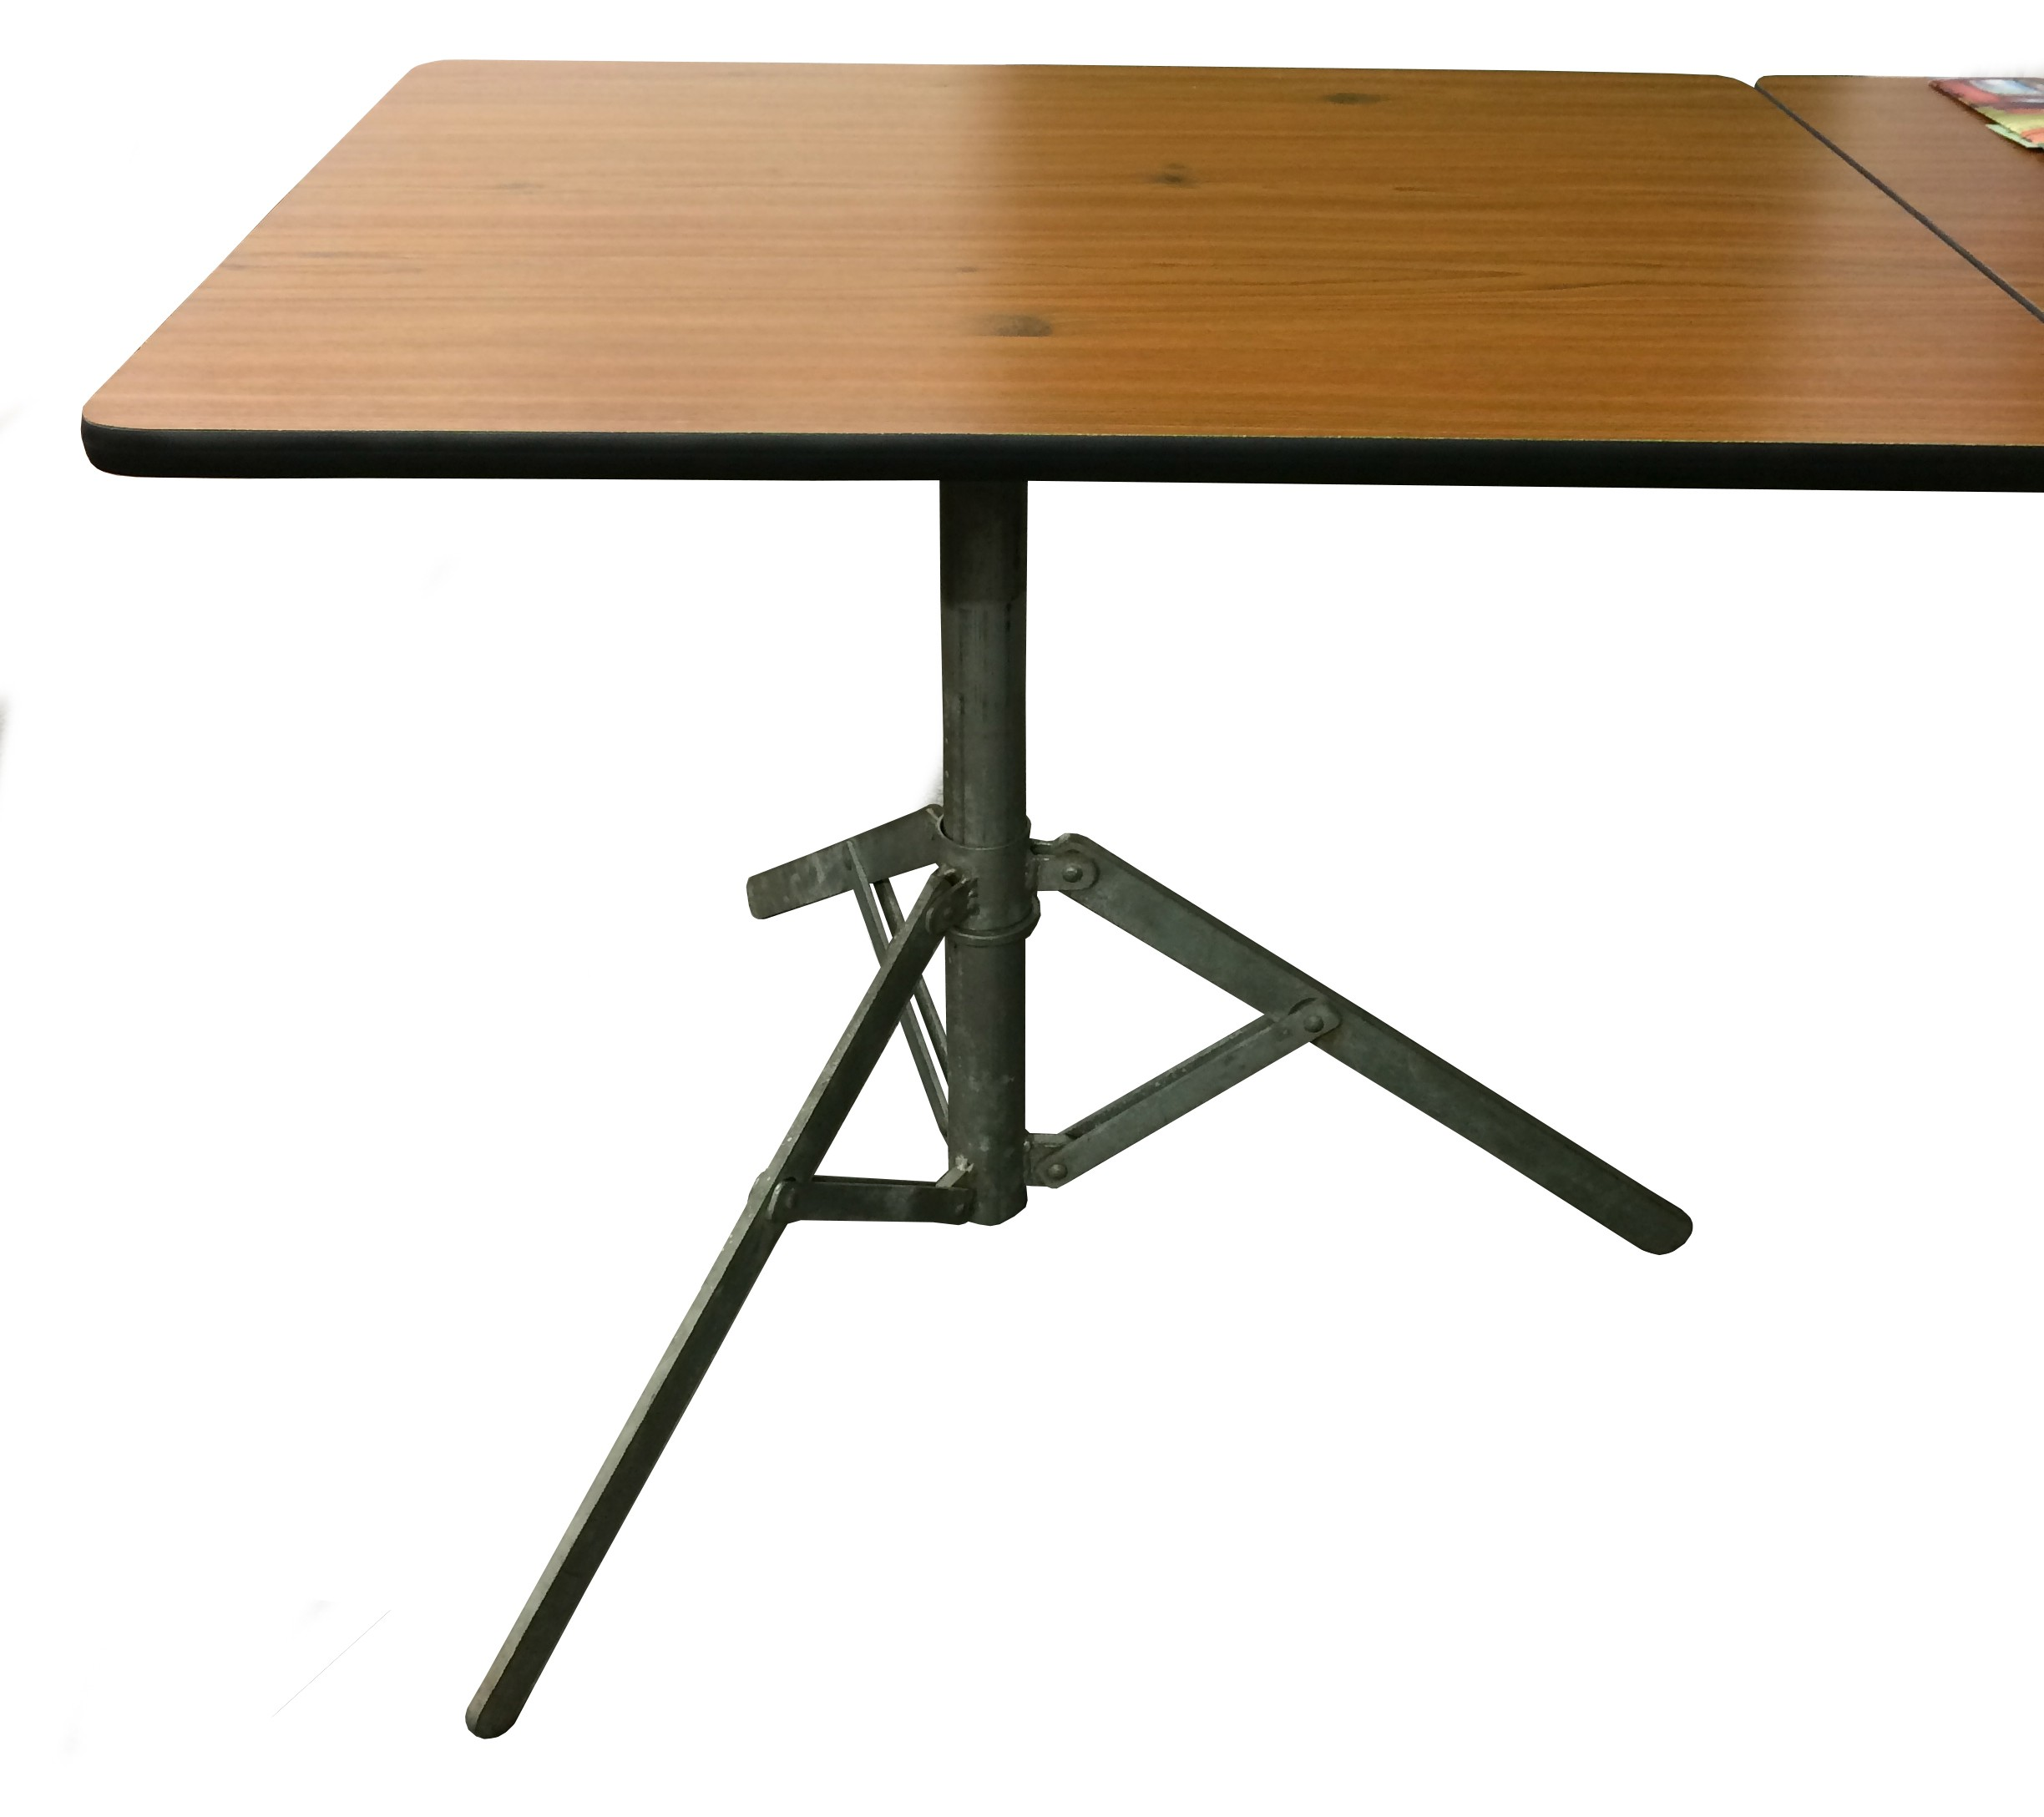 Folding Table Leg crowdbuild for